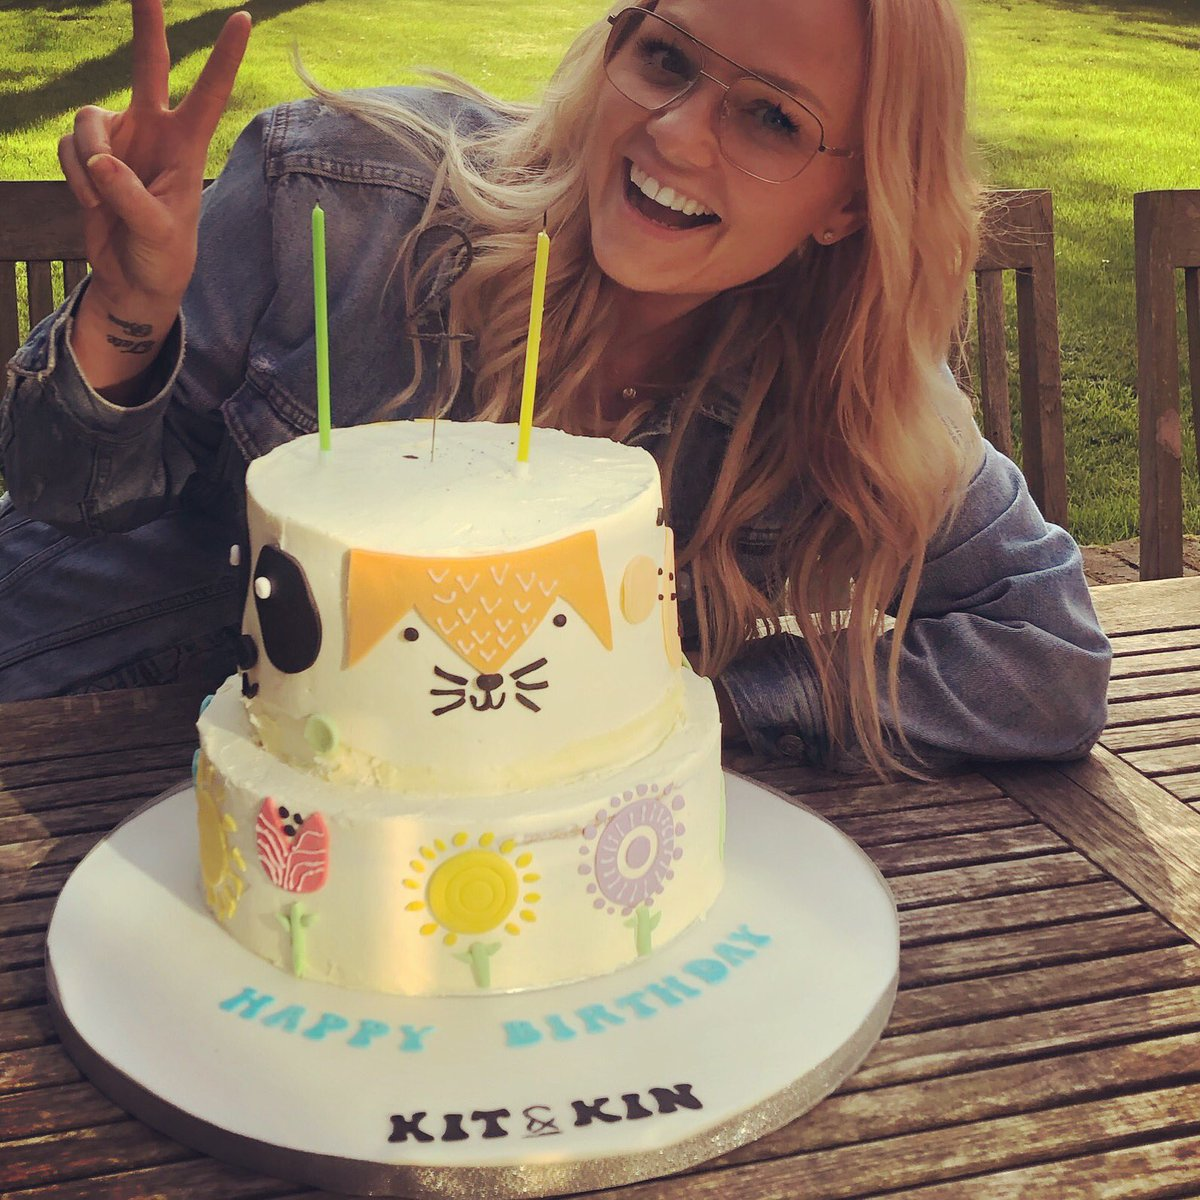 My brand @KitandKinUK is 2 years old today! Thank you so much for all of your support. ???????????? https://t.co/Wnt4A3pv6X